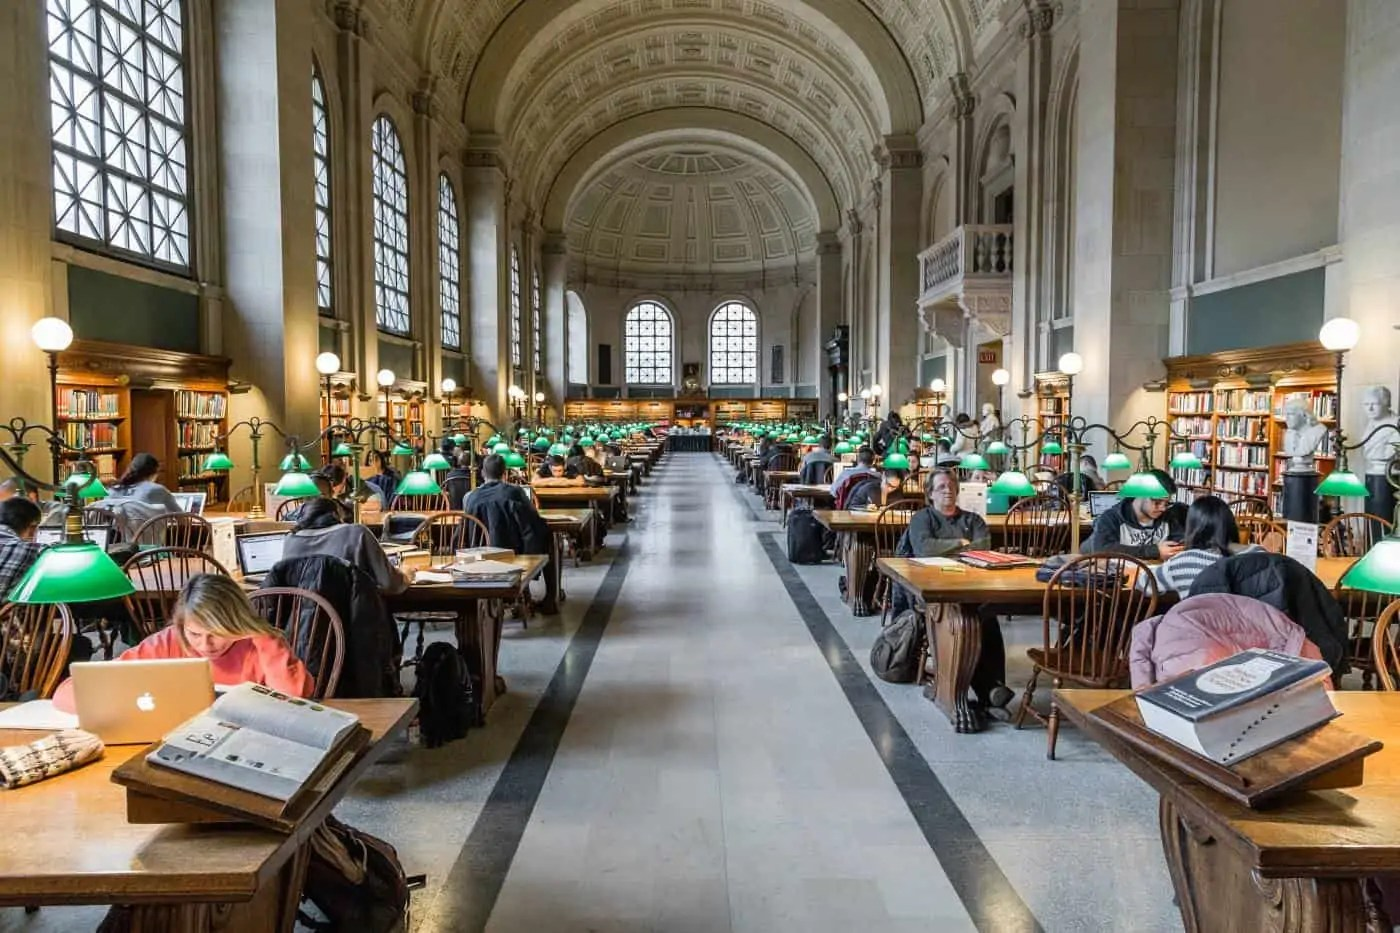 One day in Boston must include a visit to the Boston Public Library